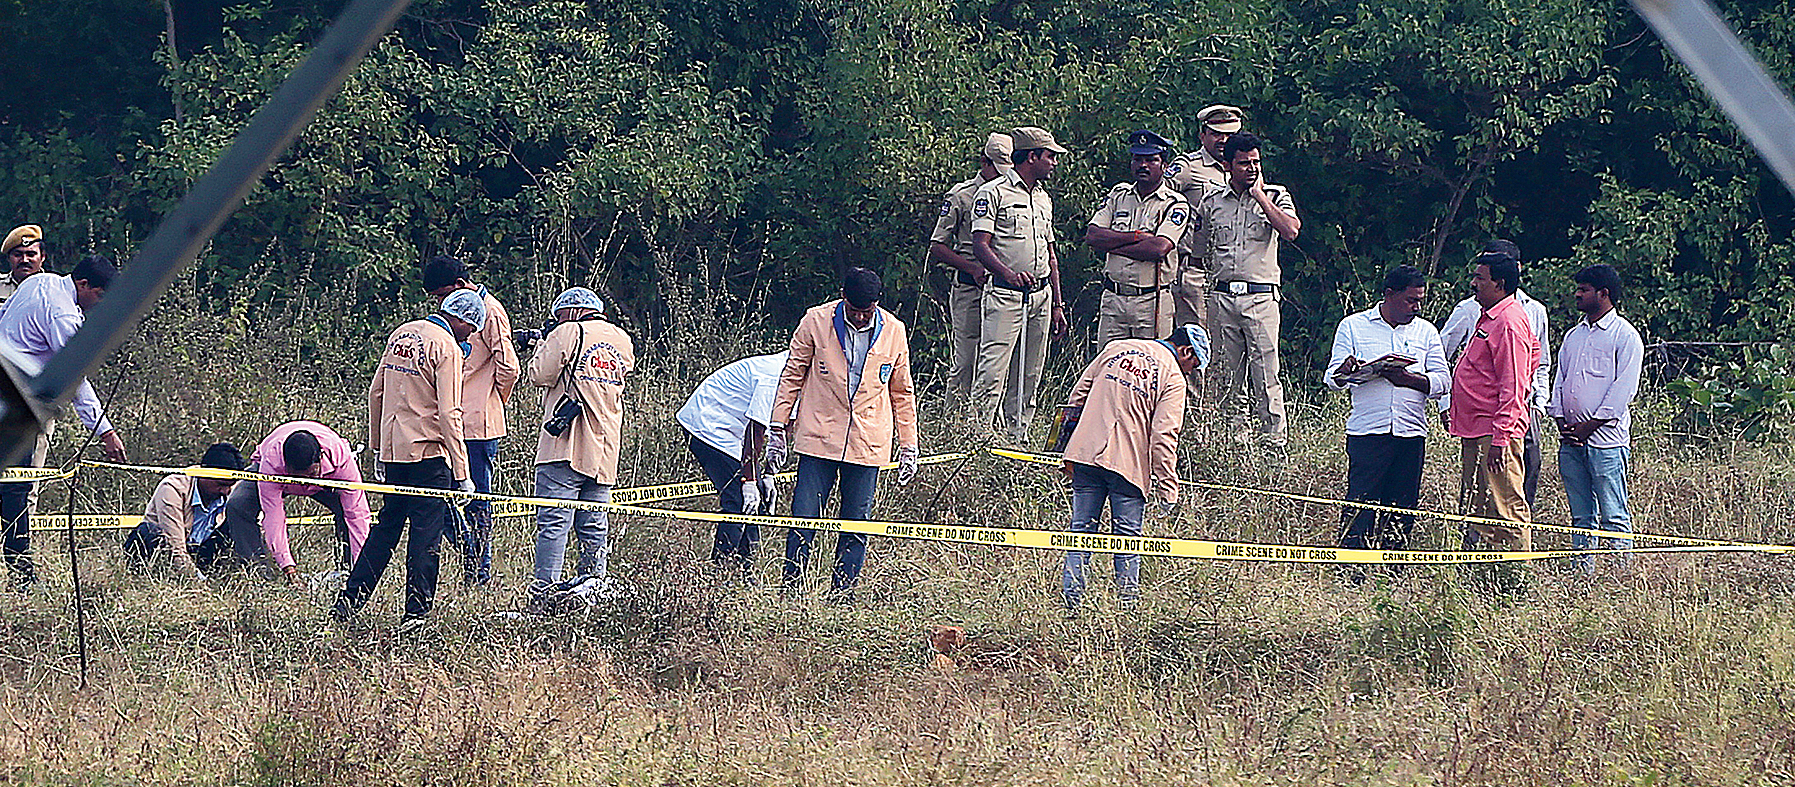 Policemen watch forensic experts investigate the site where the four rape-and-murder suspects were killed in Shadnagar near Hyderabad on Friday.